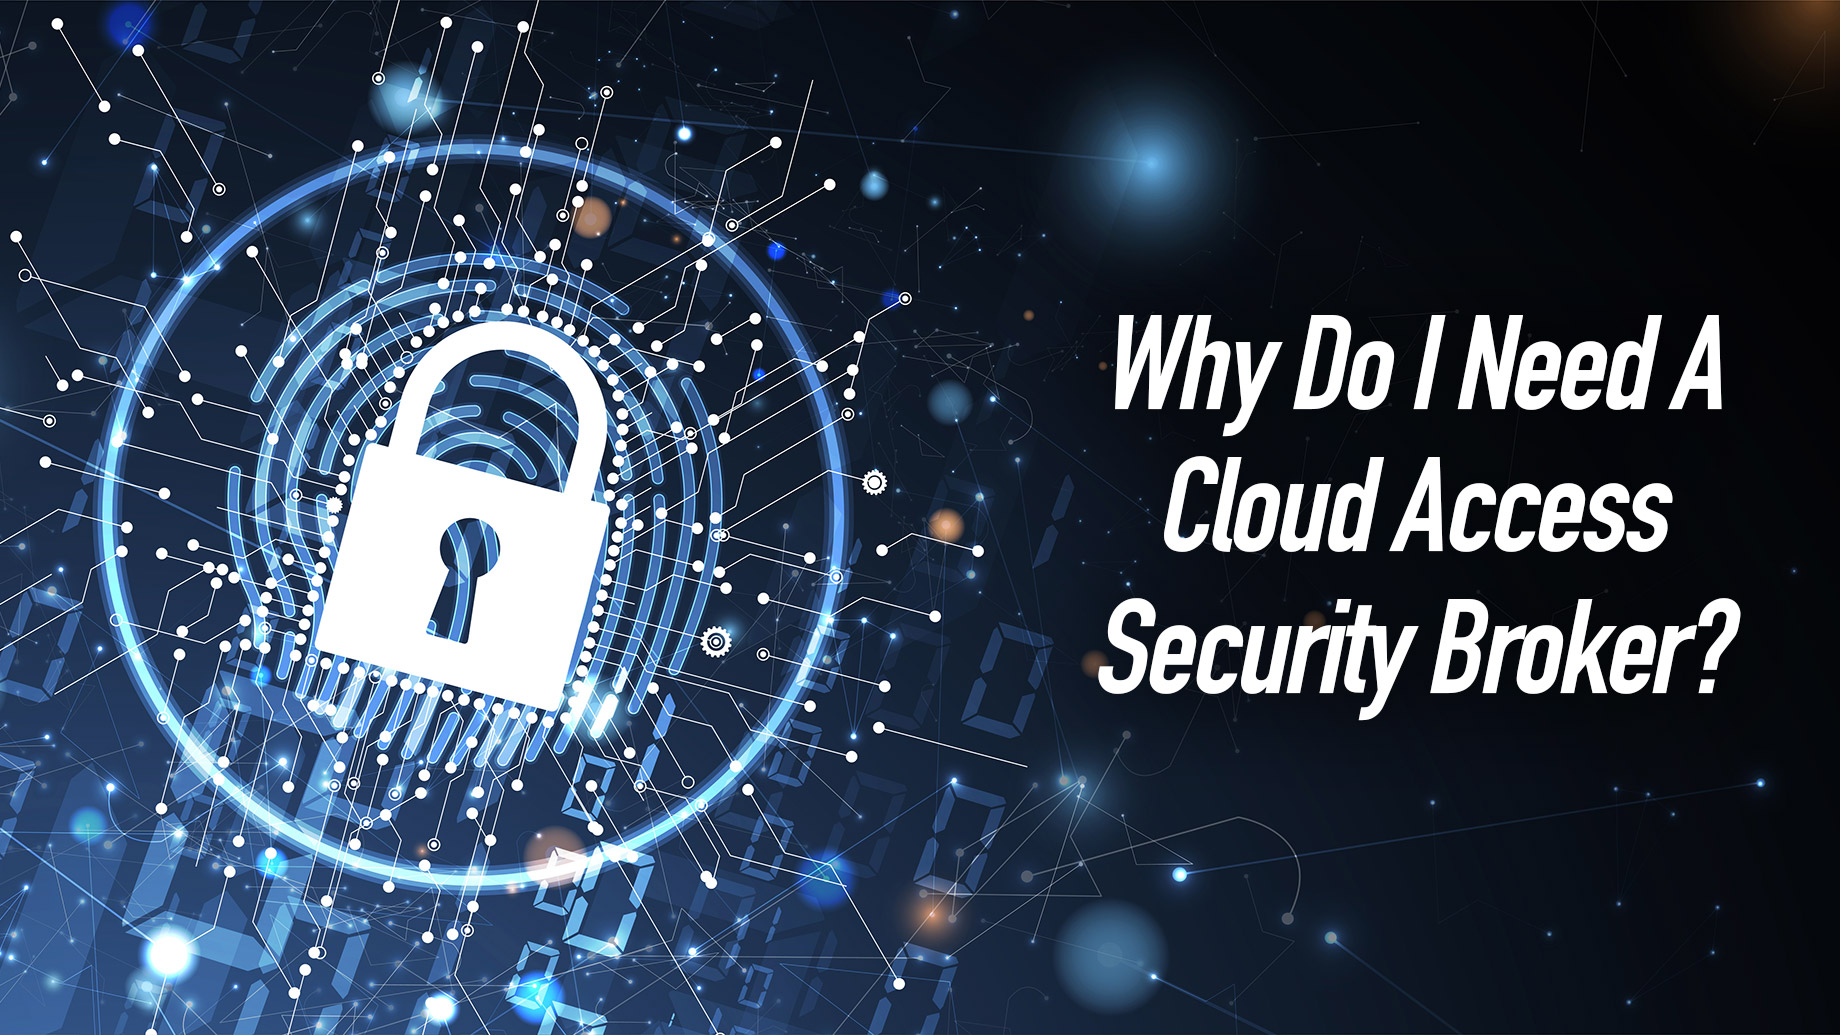 Why Do I Need A Cloud Access Security Broker?